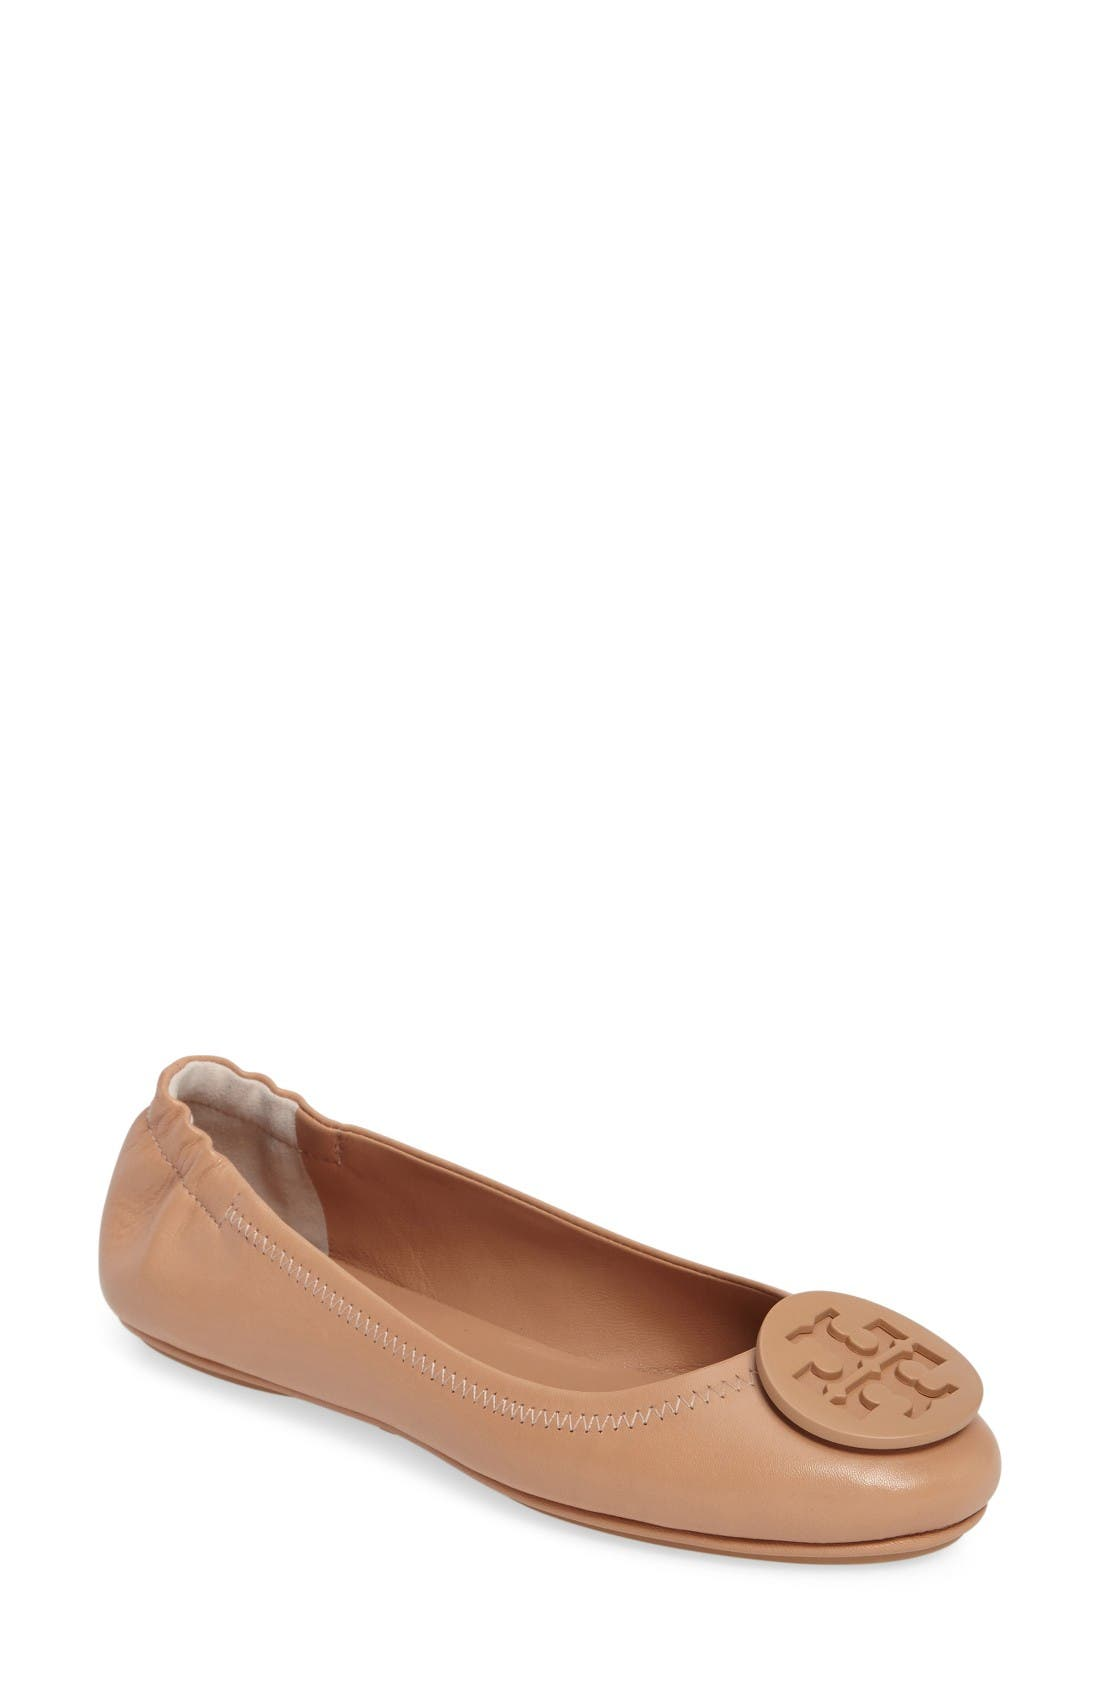 Tory Burch 'Minnie' Travel Ballet Flat with Logo (Women)